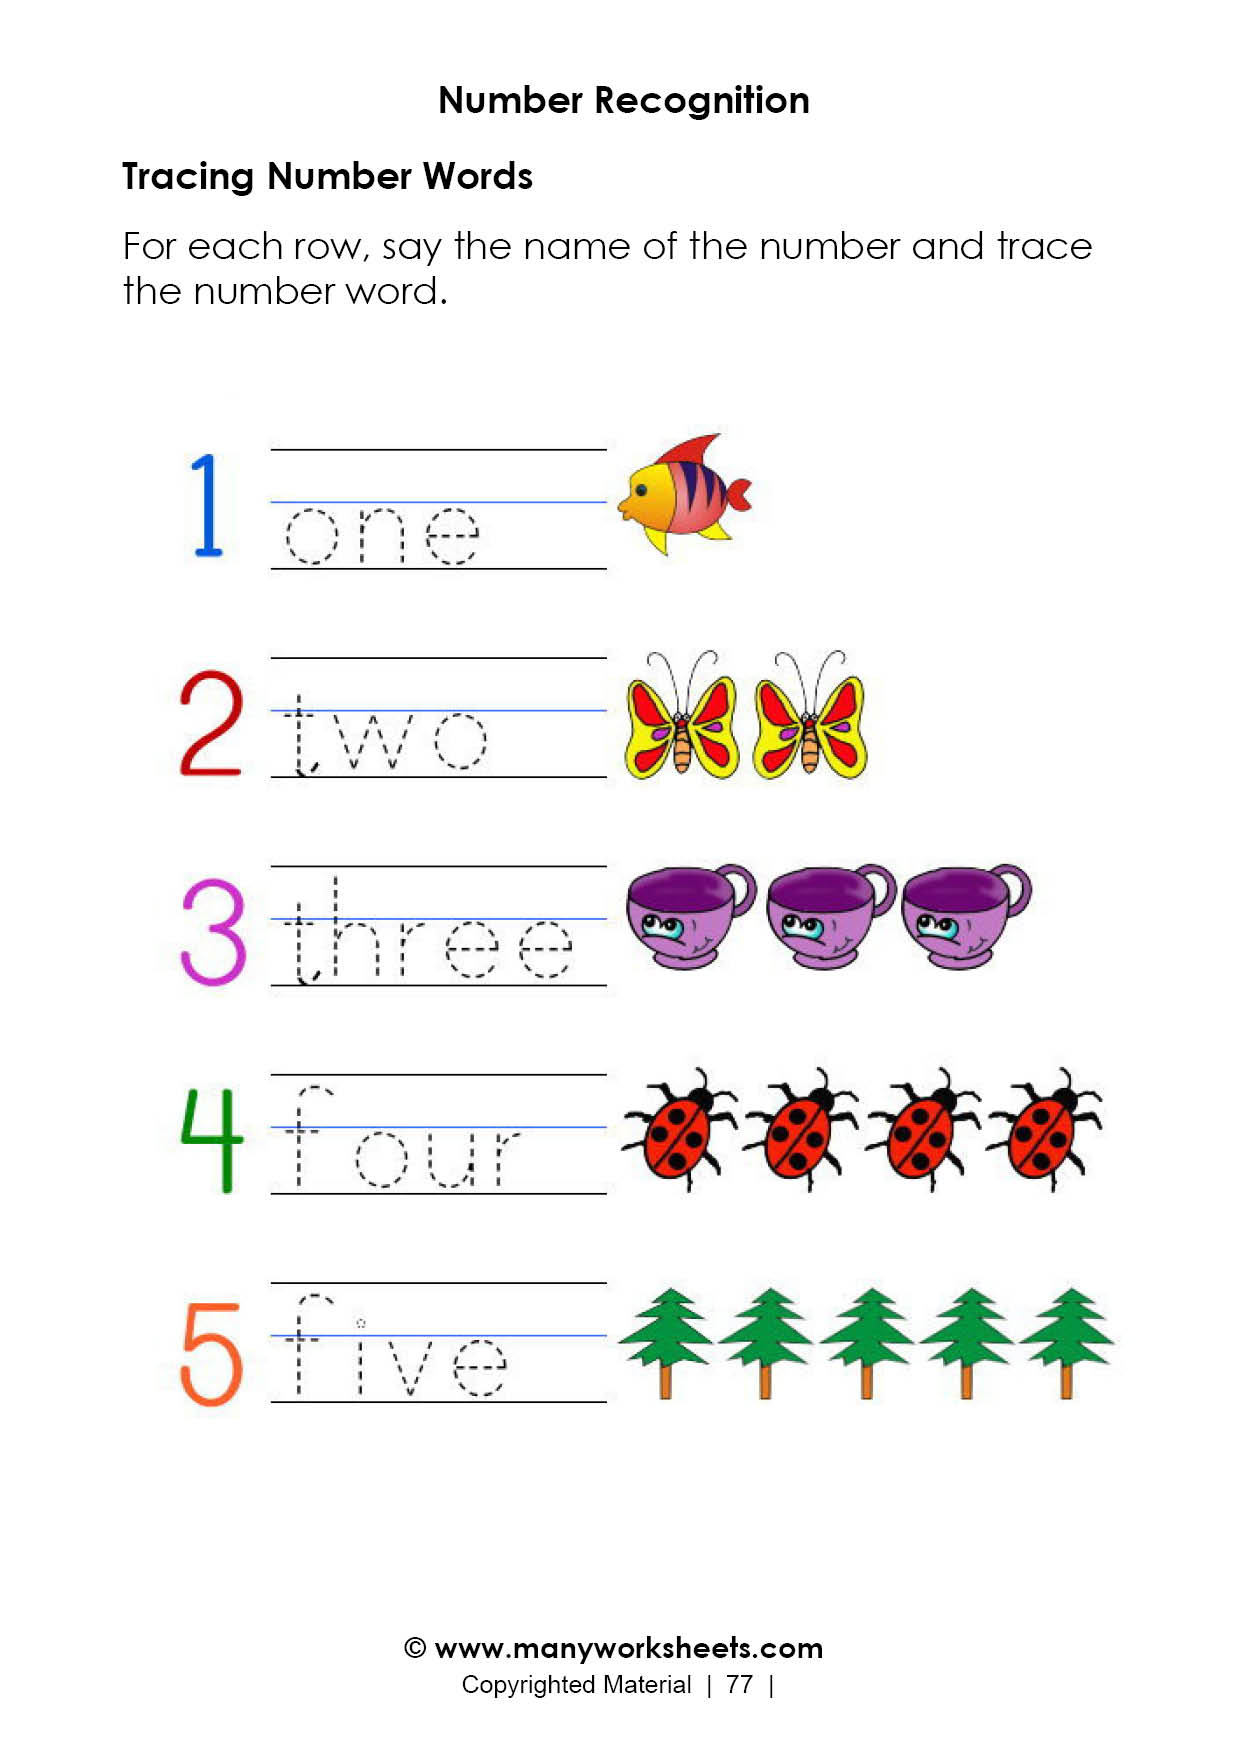 Number-Recognition-1